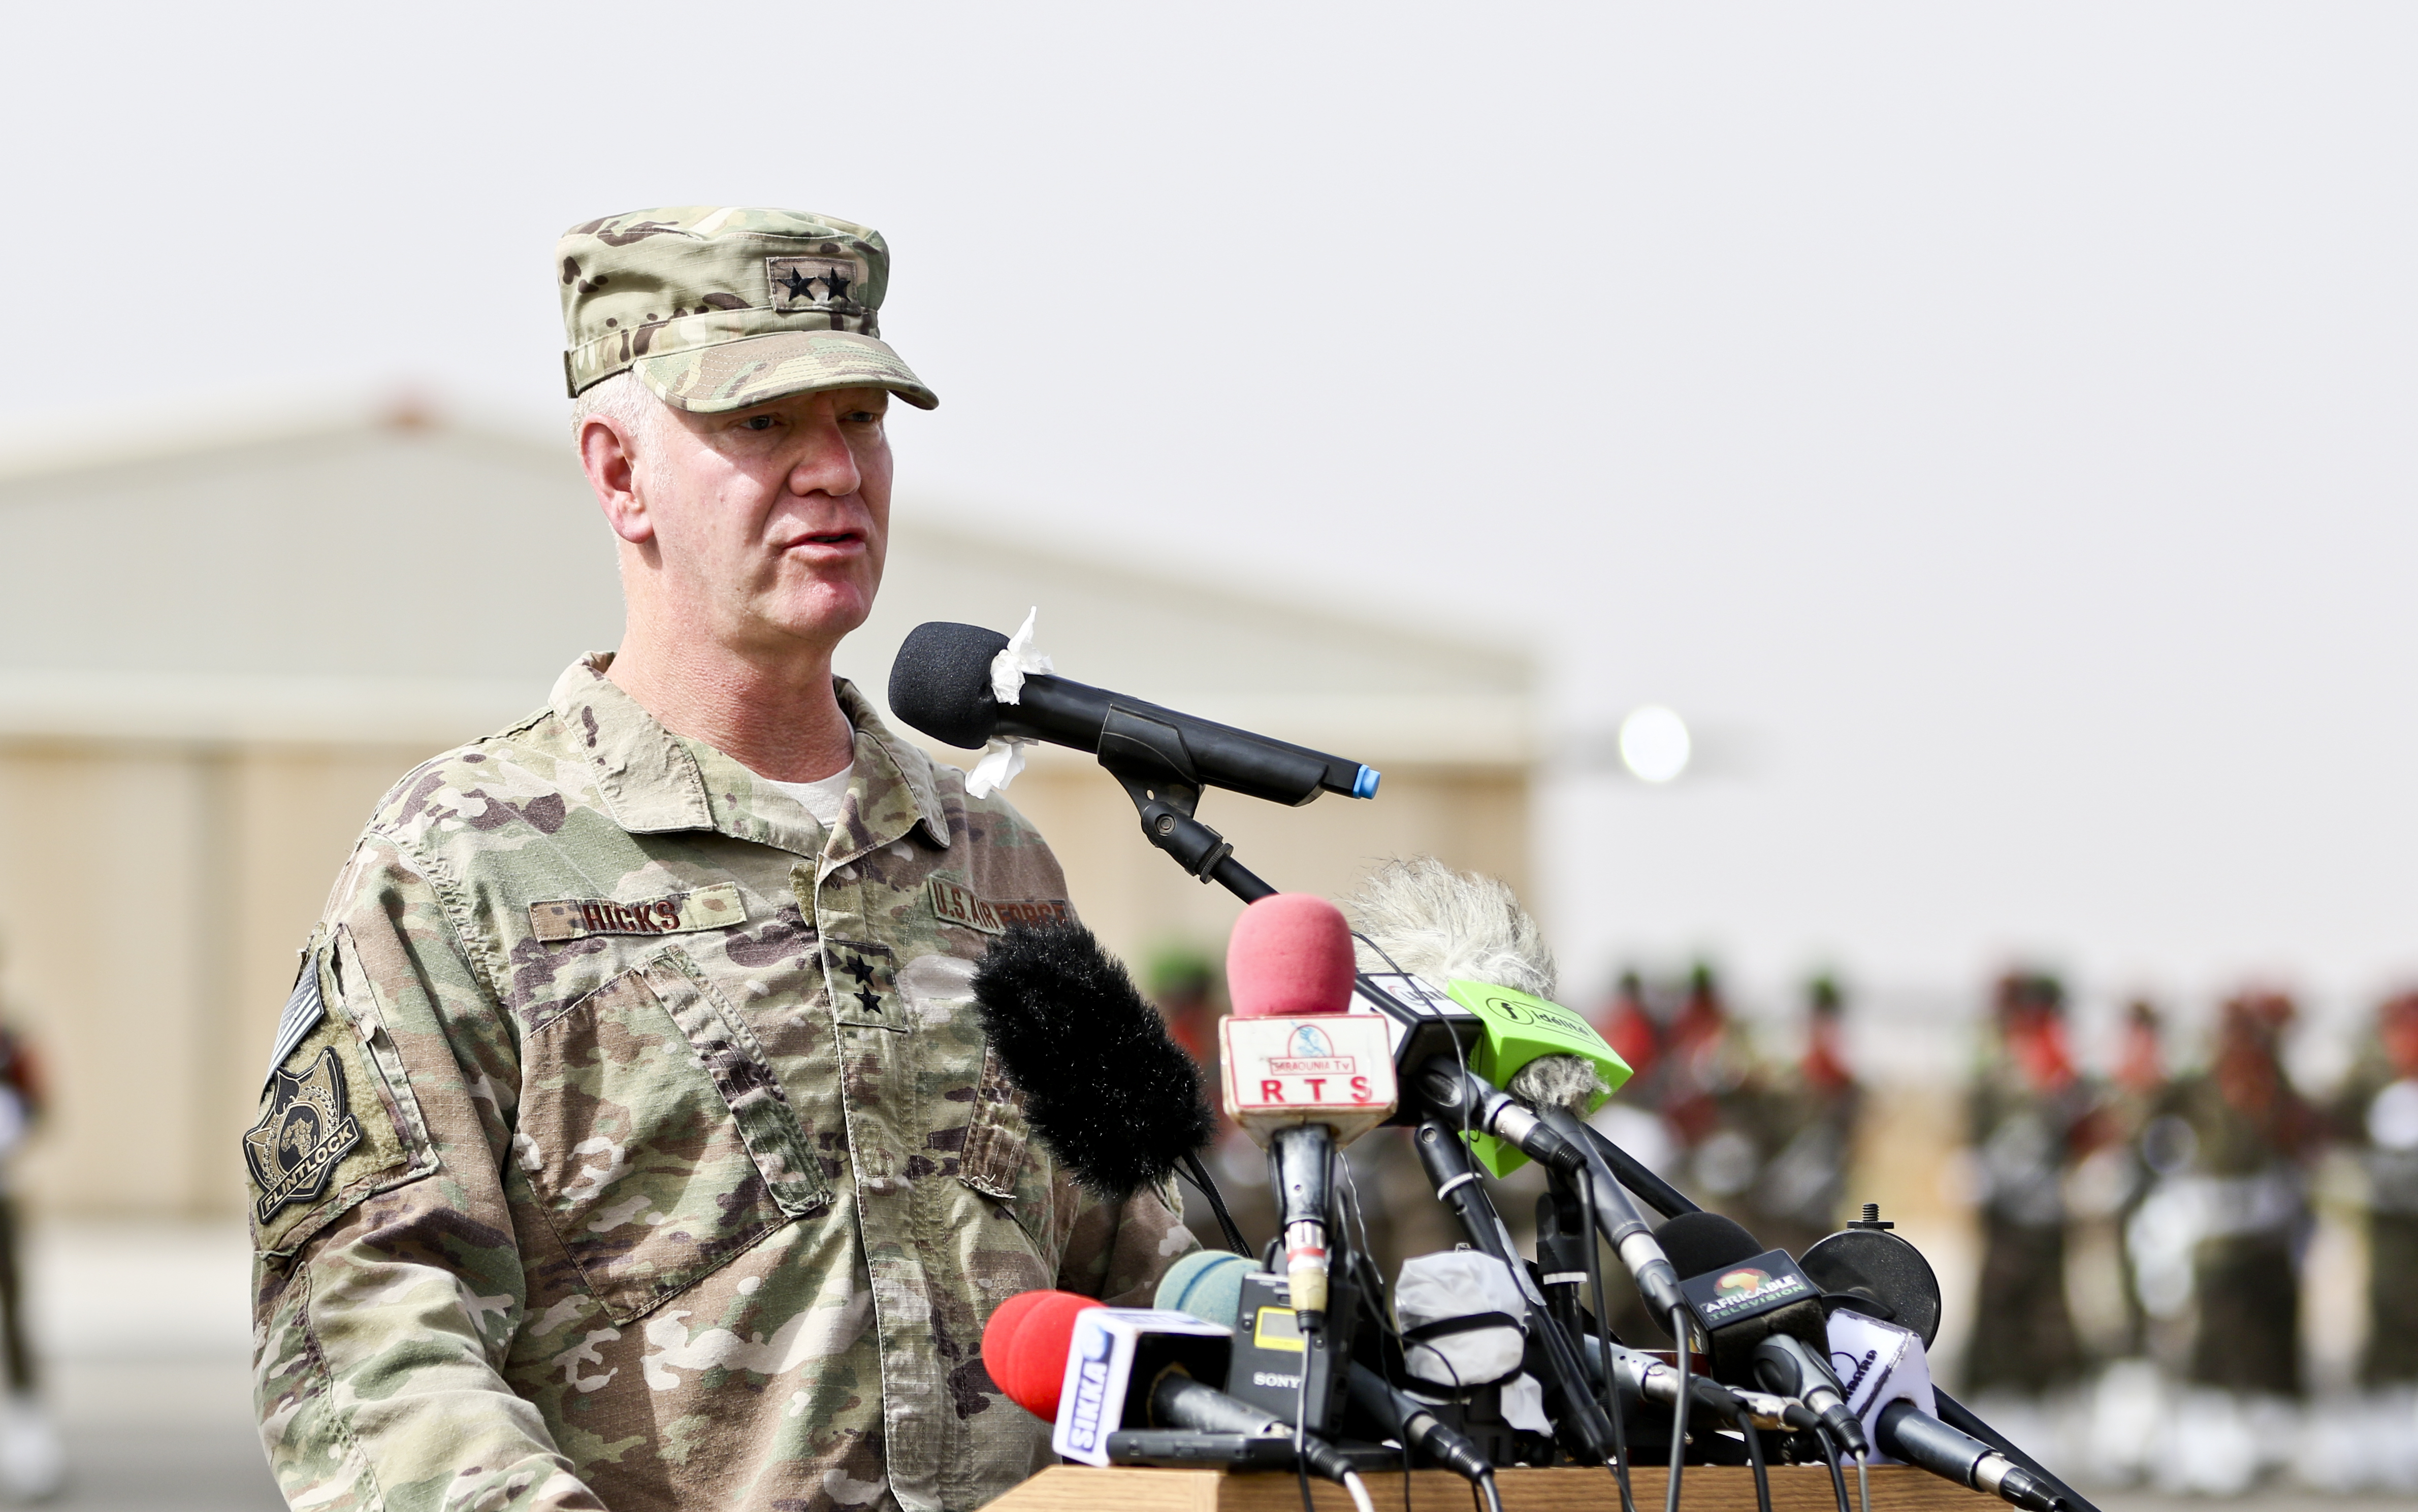 NIAMEY, Niger – Maj. Gen. Marcus Hicks, commander, Special Operations Command Africa, gives remarks during the opening ceremony of Flintlock 2018 in Niamey, Niger, April 11, 2018. Flintlock, hosted by Niger, with key outstations at Burkina Faso and Senegal, is designed to strengthen the ability of key partner nations in the region to counter violent extremist organizations, protect their borders, and provide security for their people. (U.S. Army Photo by Sgt. Heather Doppke/79th Theater Sustainment Command)